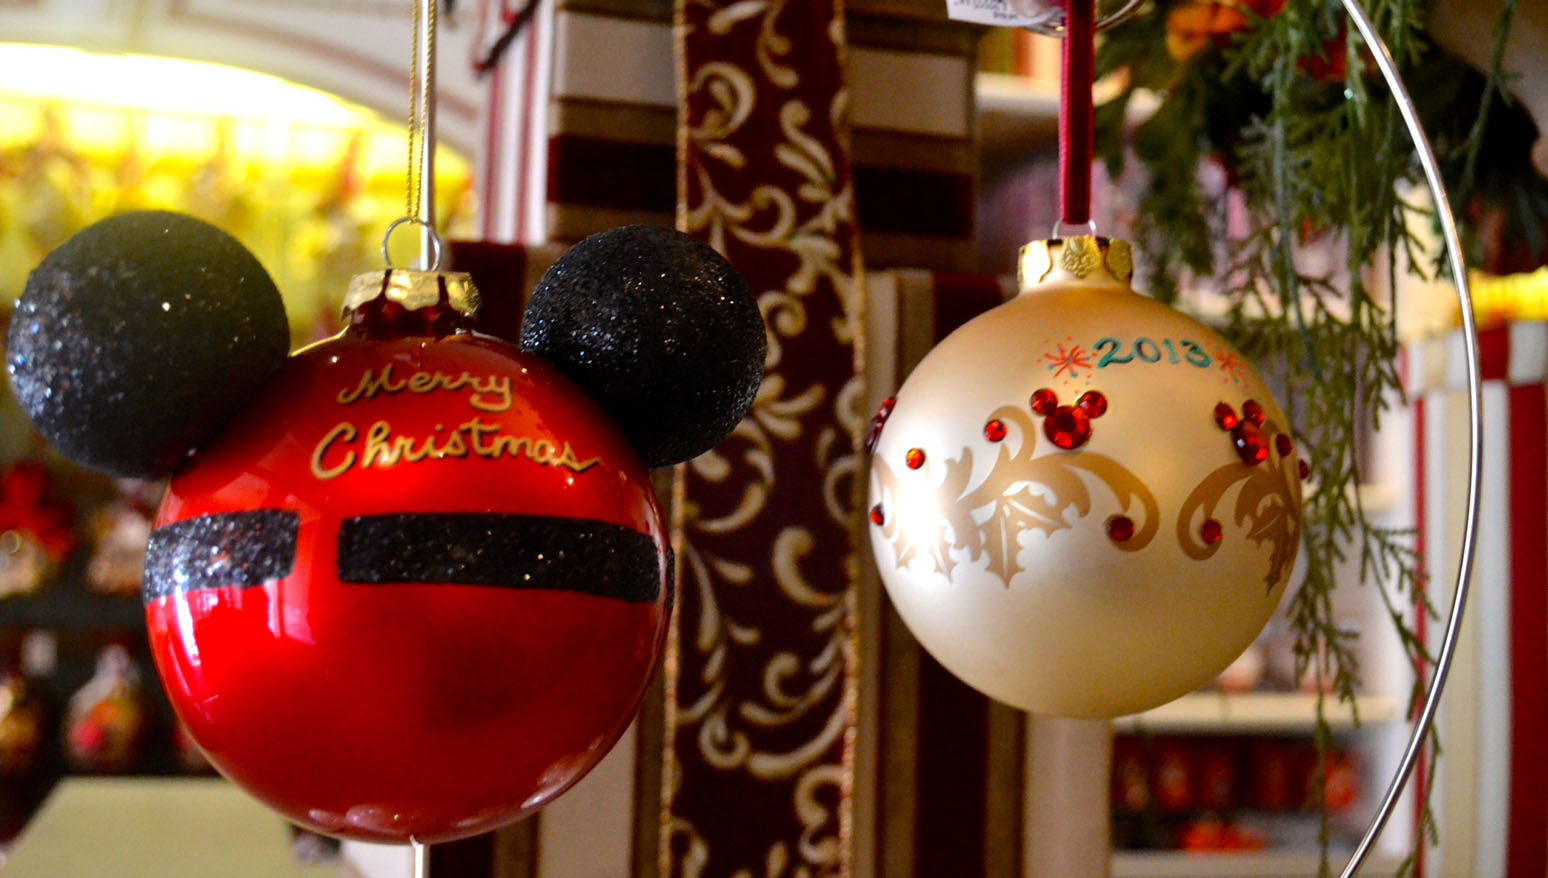 Disneyland Christmas Decorations 2017 : Ornaments add a personal touch to the holidays at